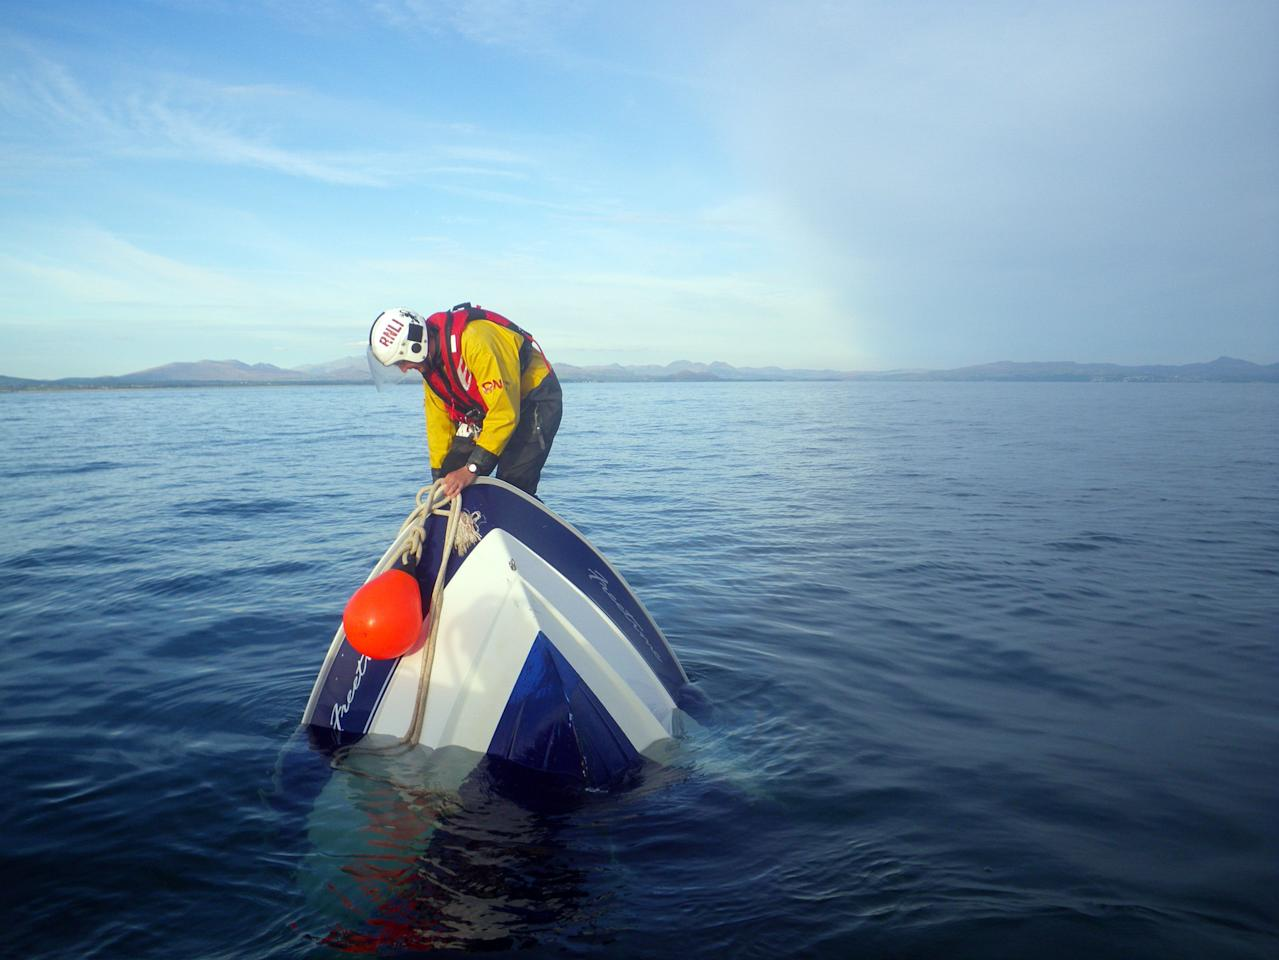 Second place photo by Paul Collins show a RNLI volunteer on an upturned boat in Abersoch, Wales (Paul Collins/Rex Features)